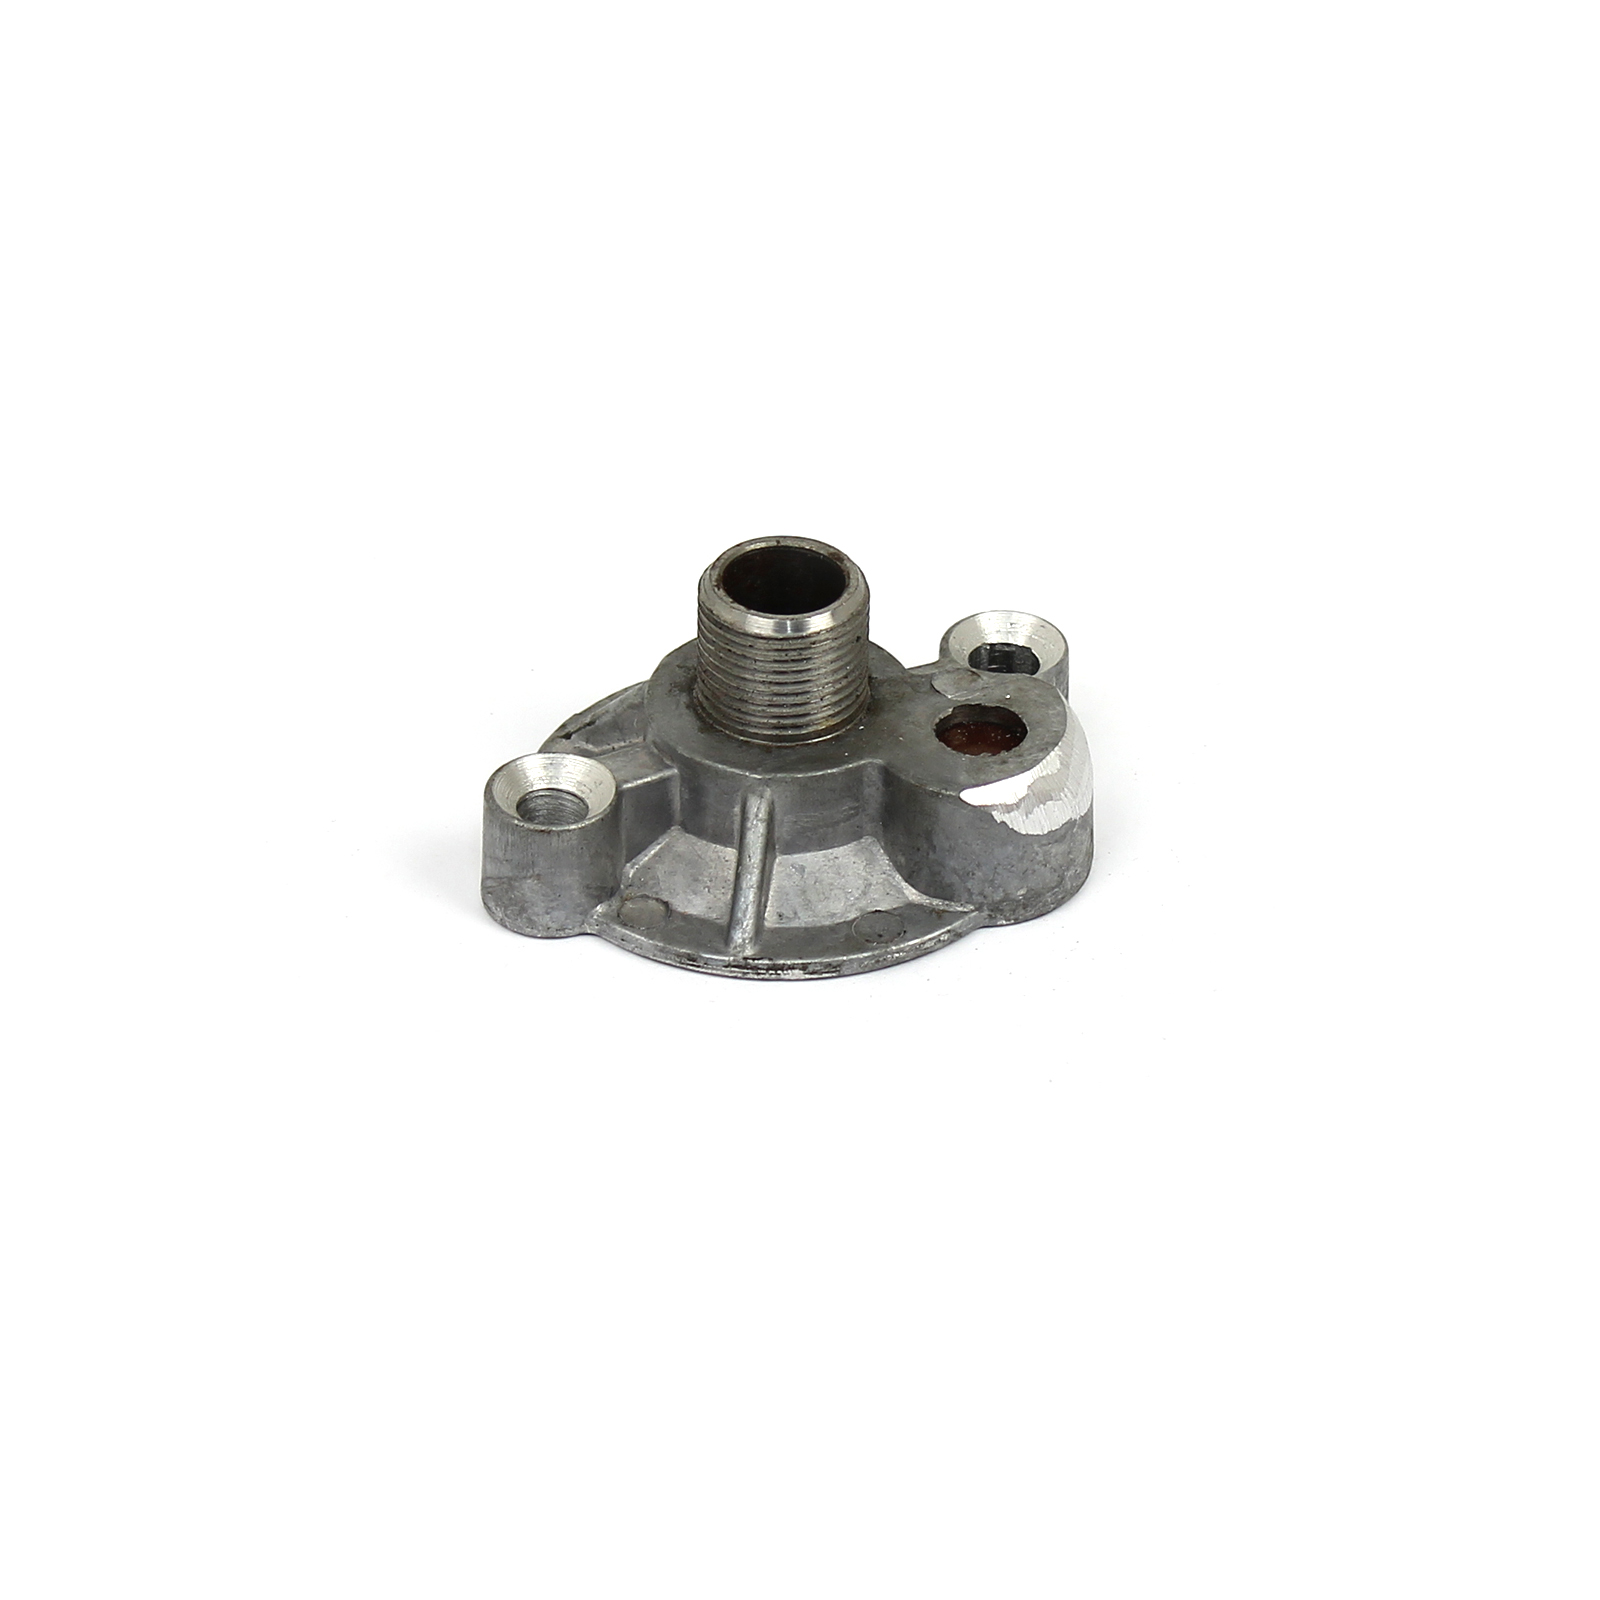 Chevy SBC 350 Engine to Oil Filter Adapter